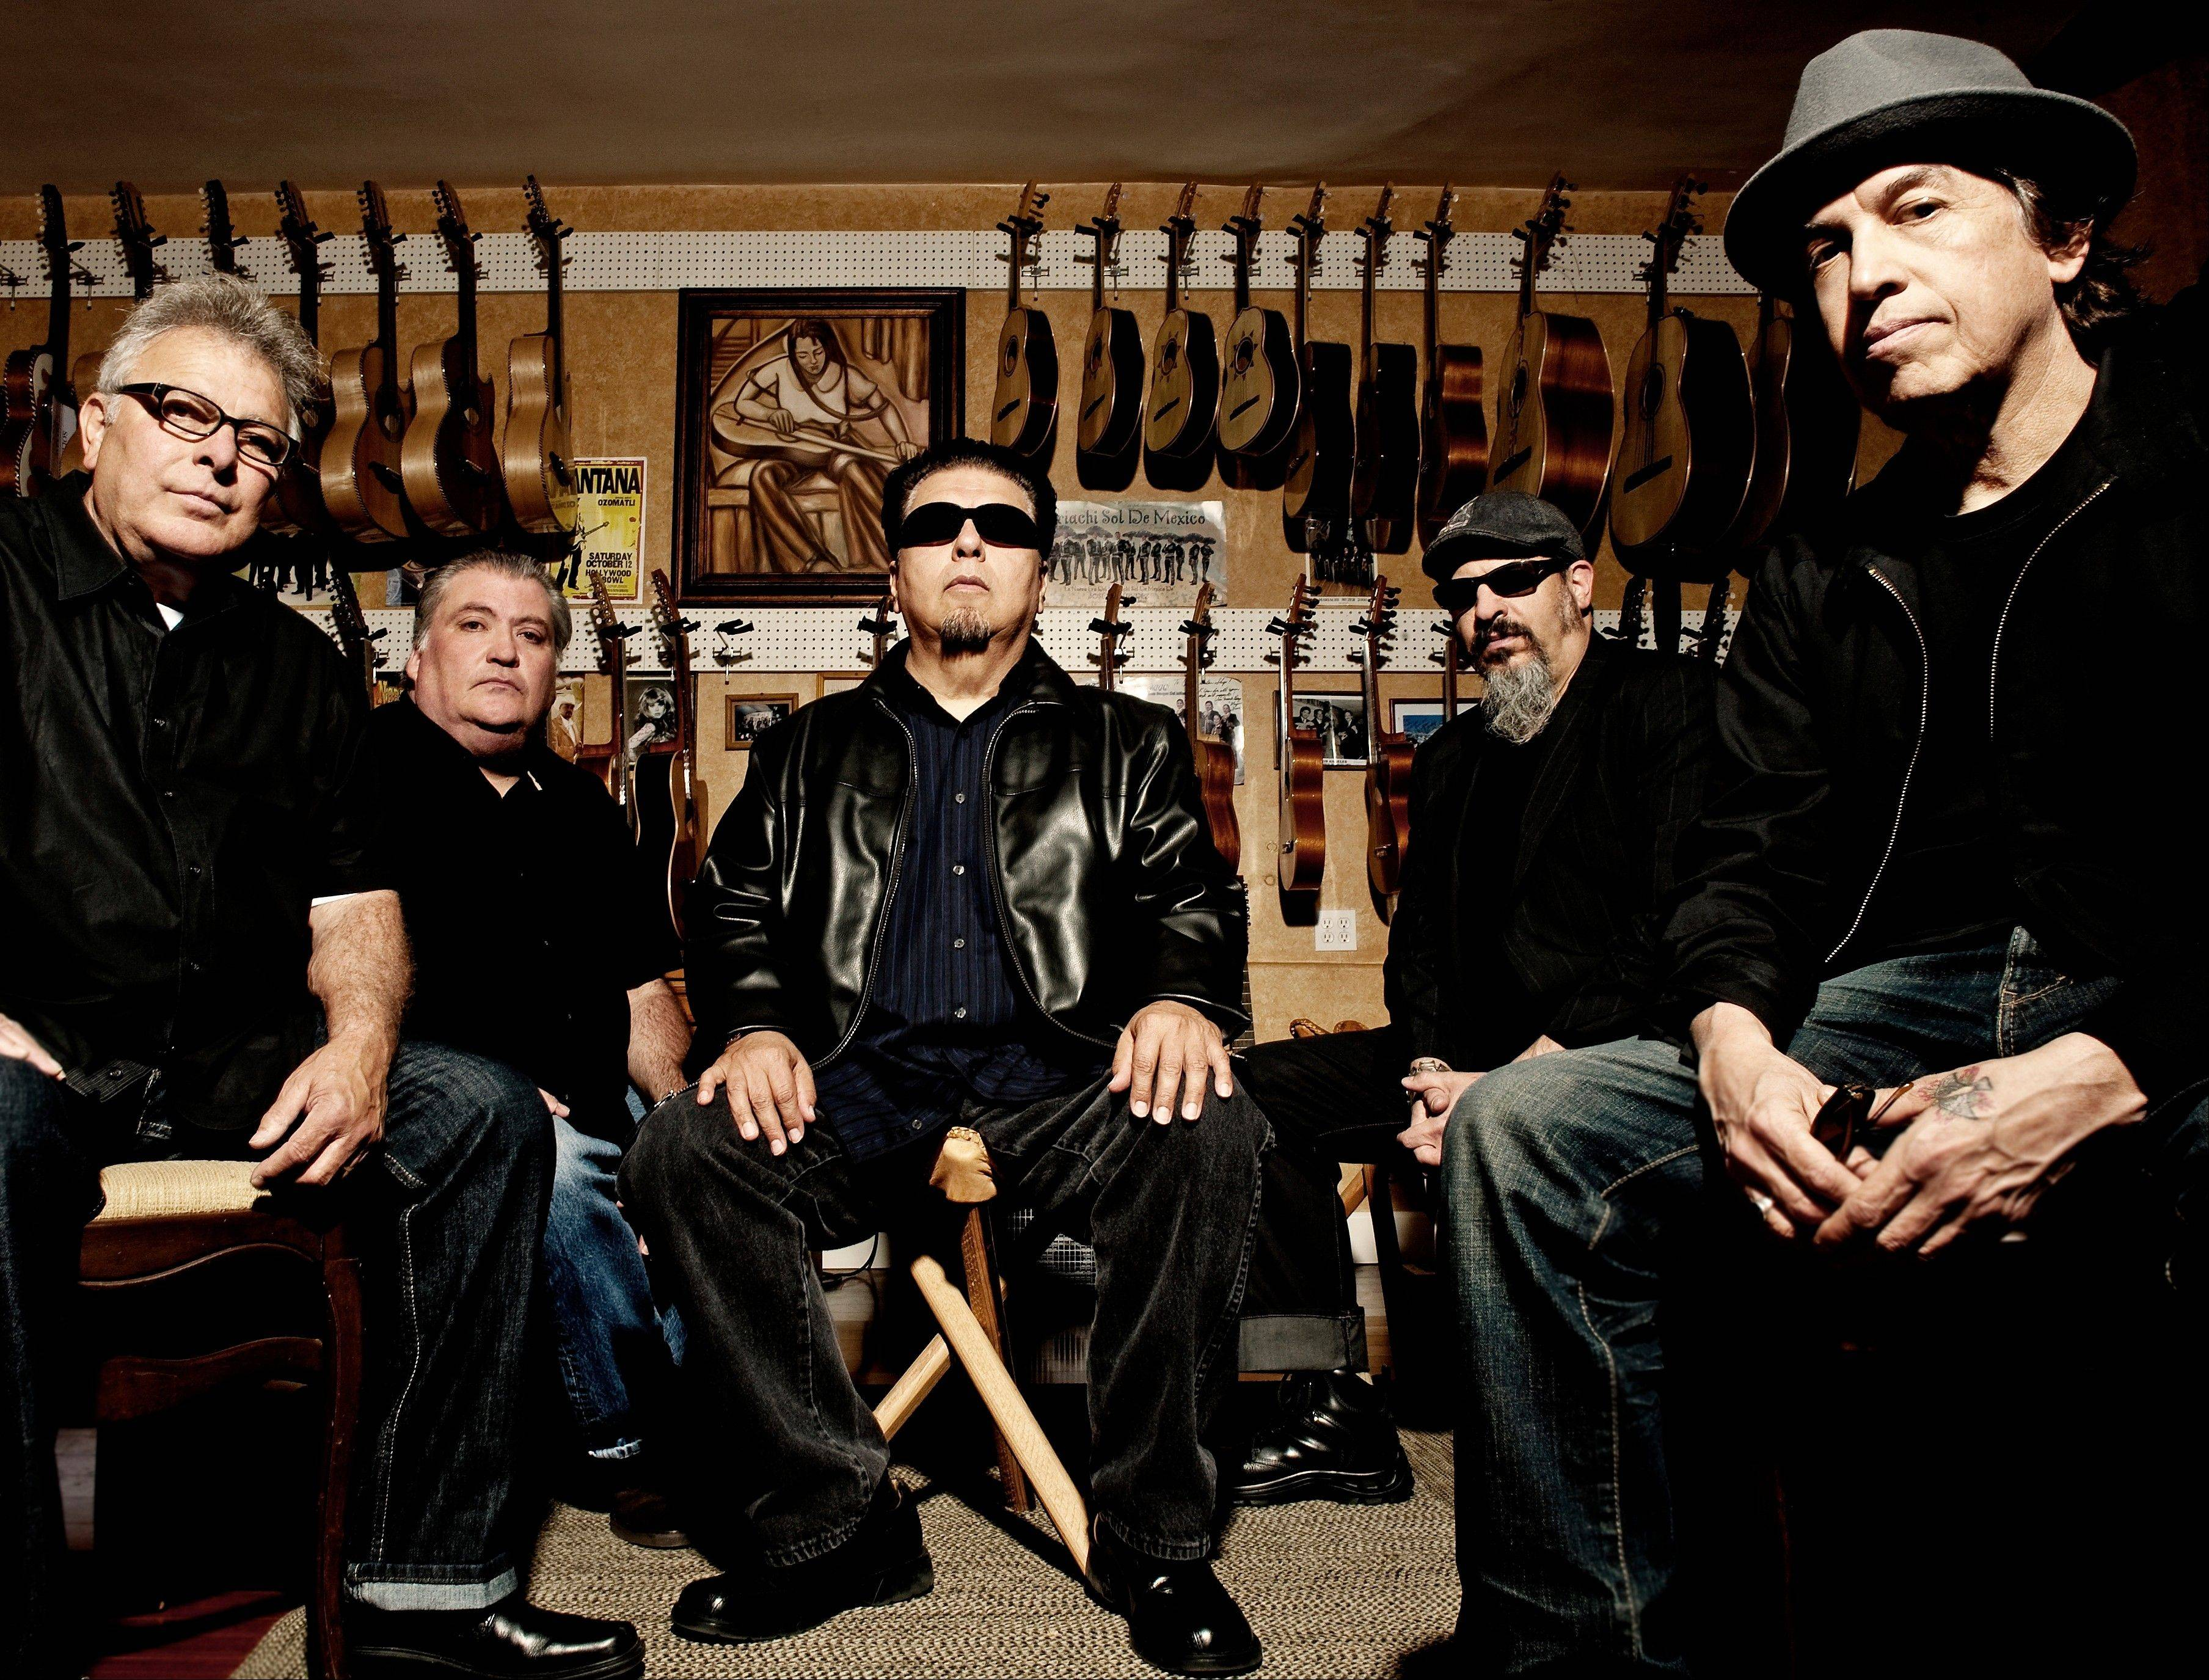 40 years ago, Los Lobos had the boldness, and some might even say the naivet�, to fuse punk rock with Mexican folk tunes.